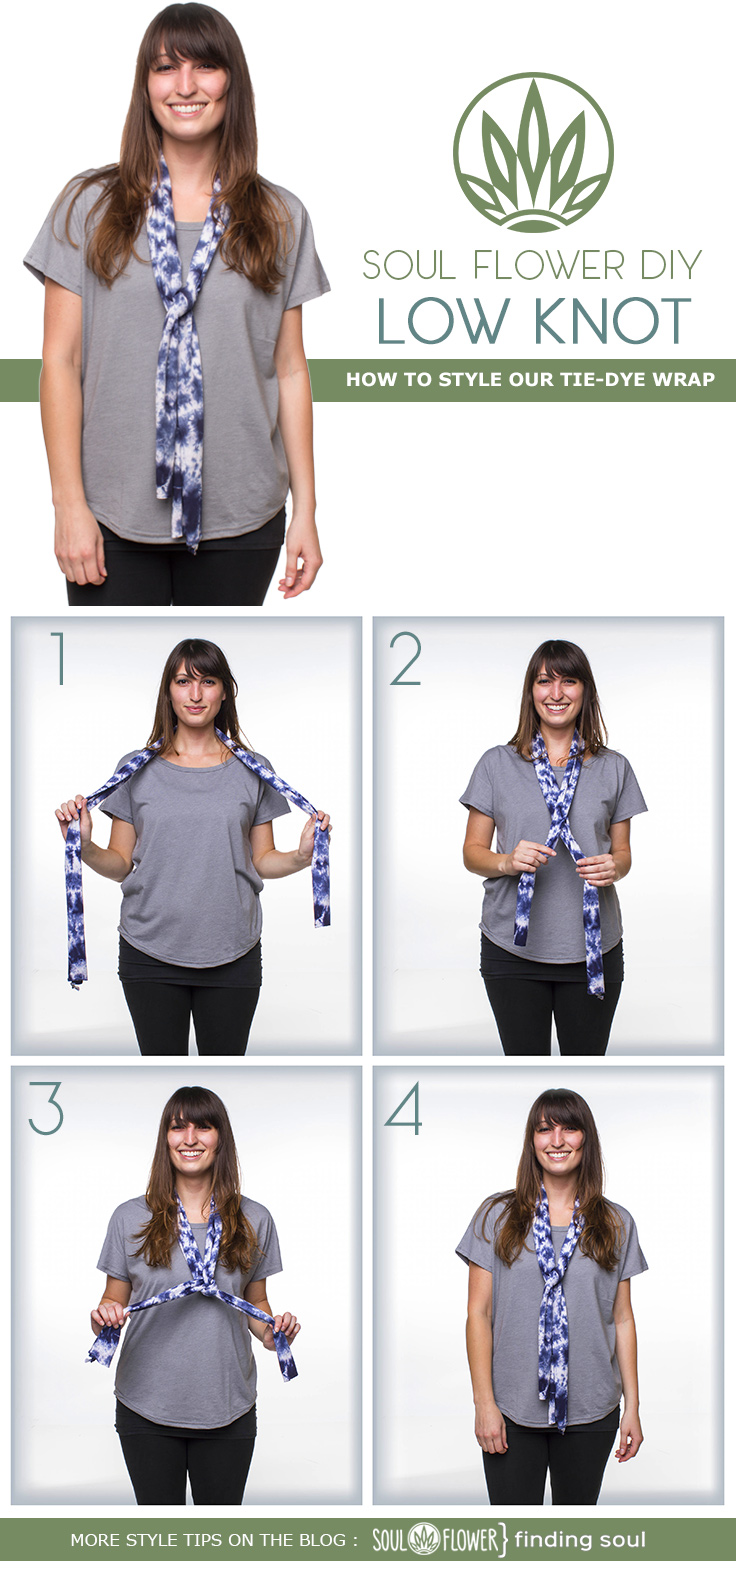 low knot - 6 Ways to Style Our Tie-Dye Wrap